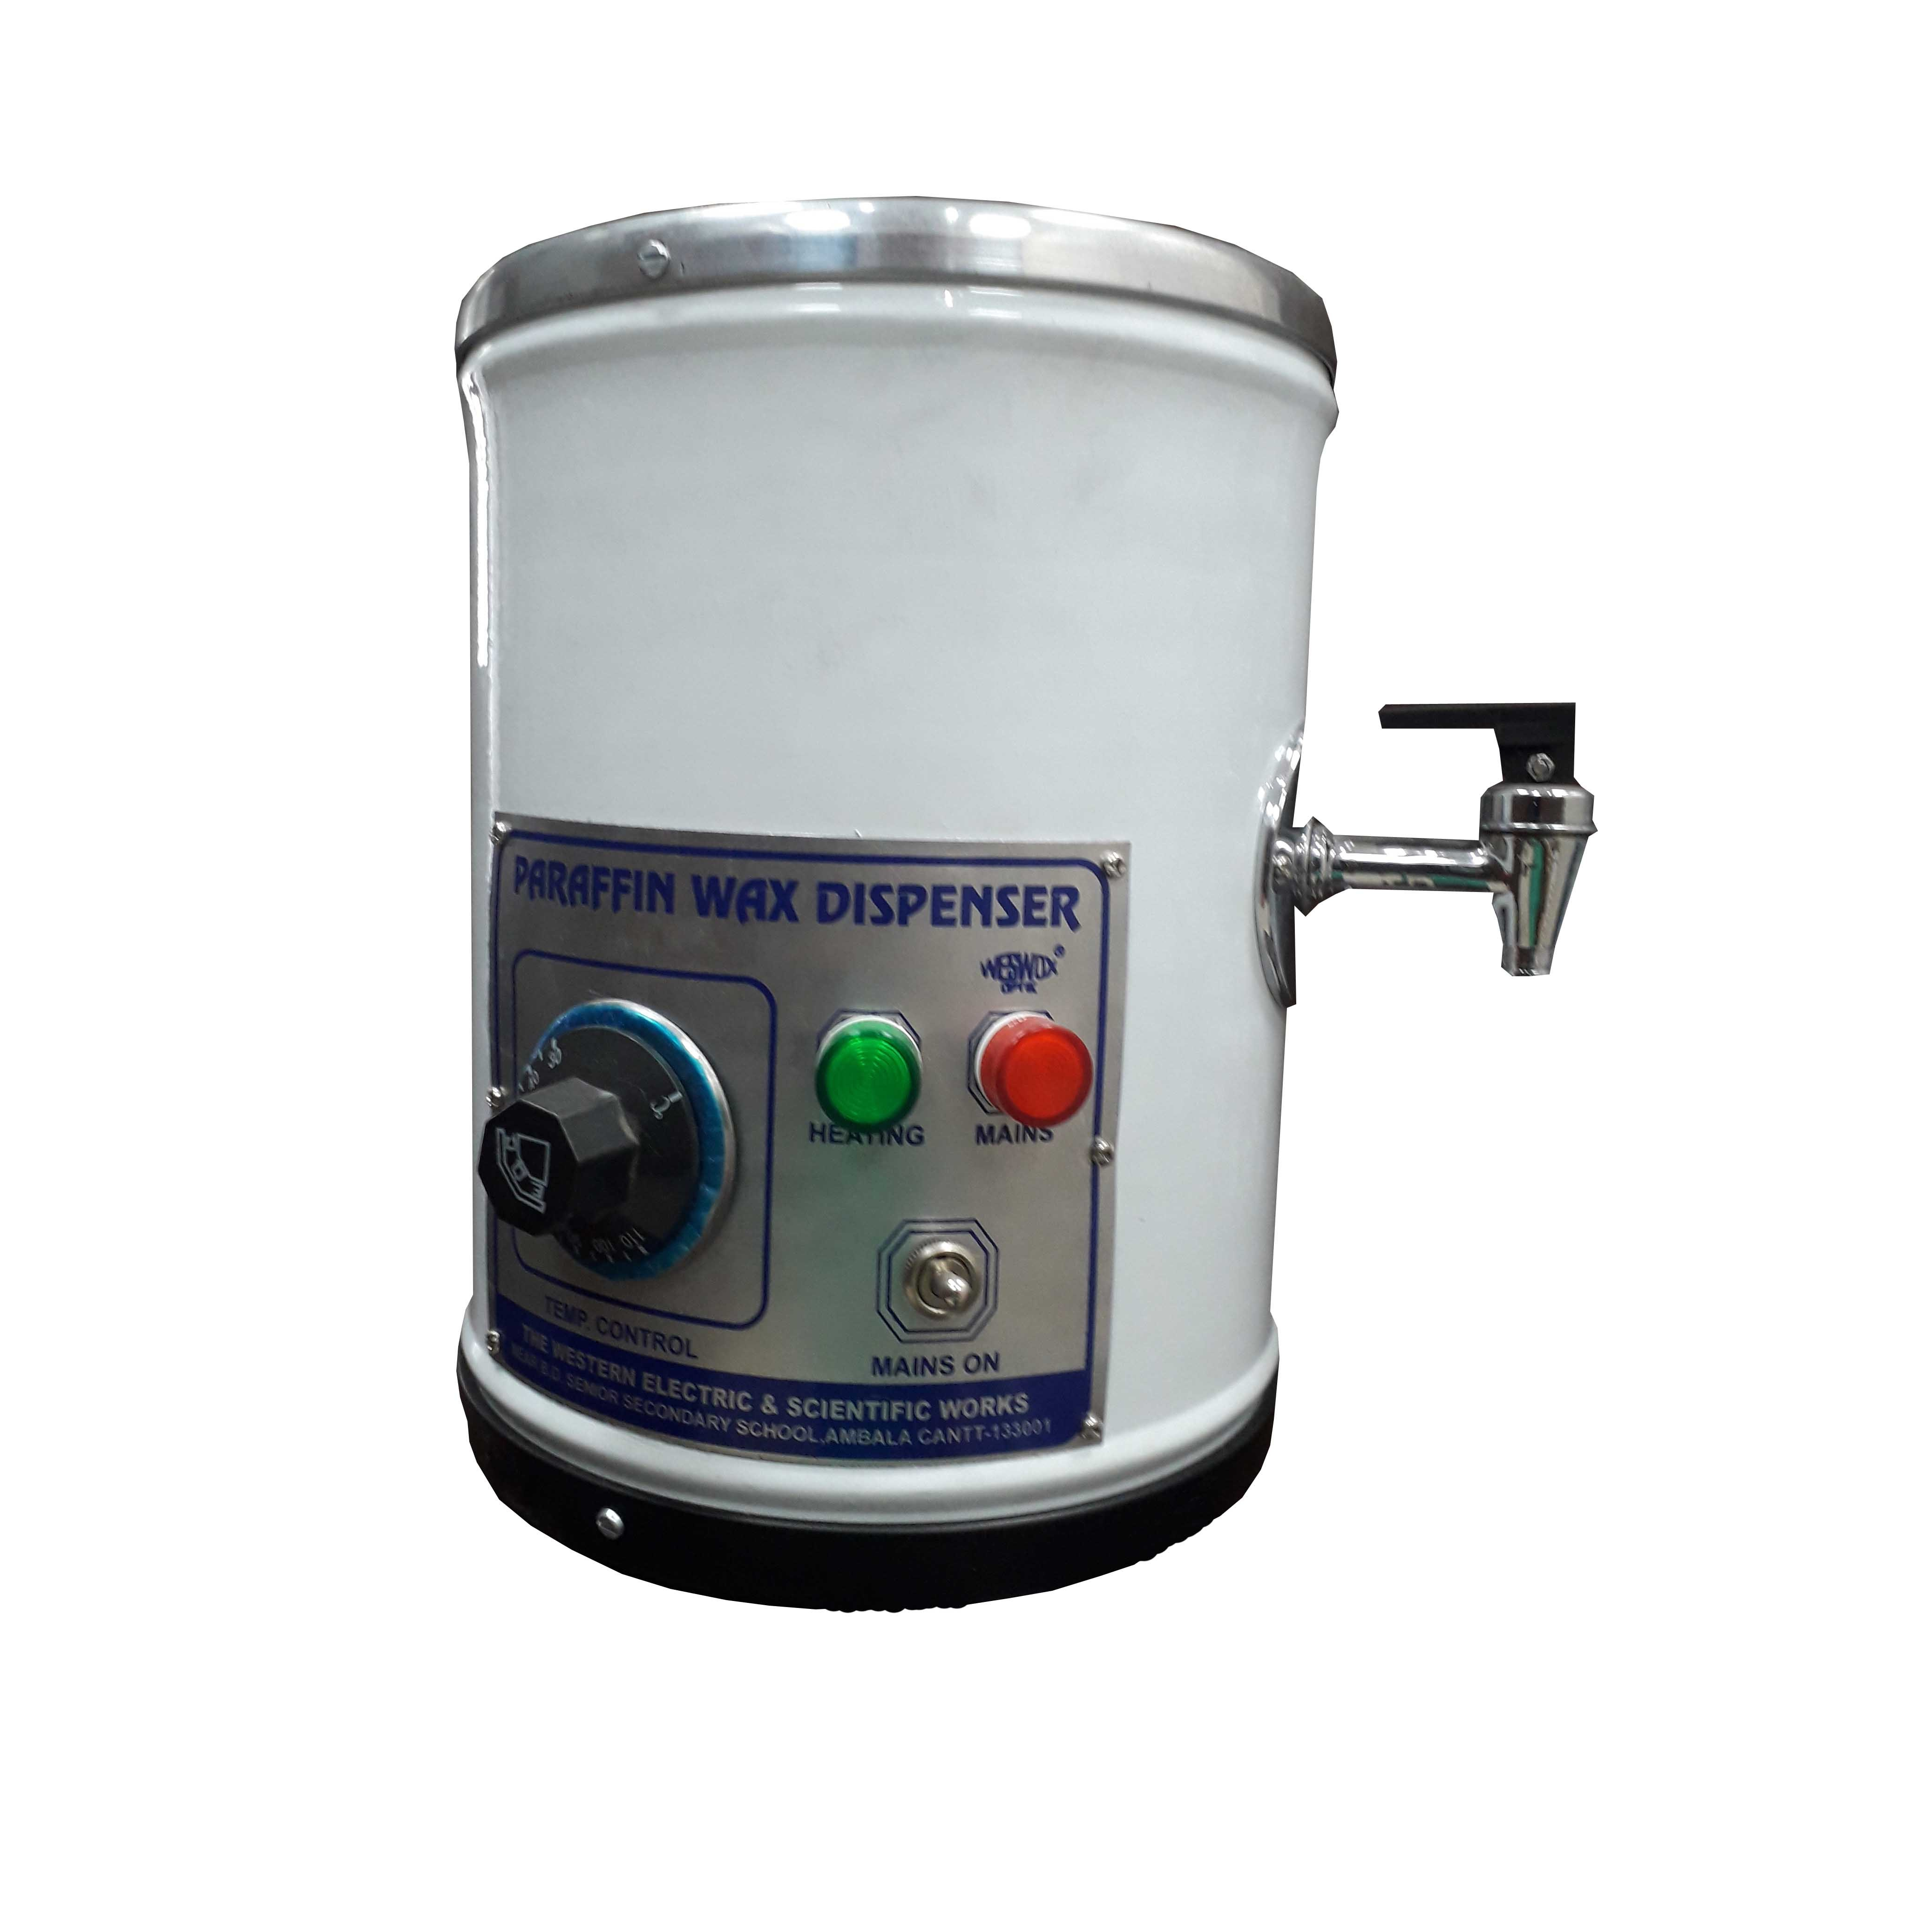 WAX DISPENSER (WITH THERMOSTAT CONTROL)